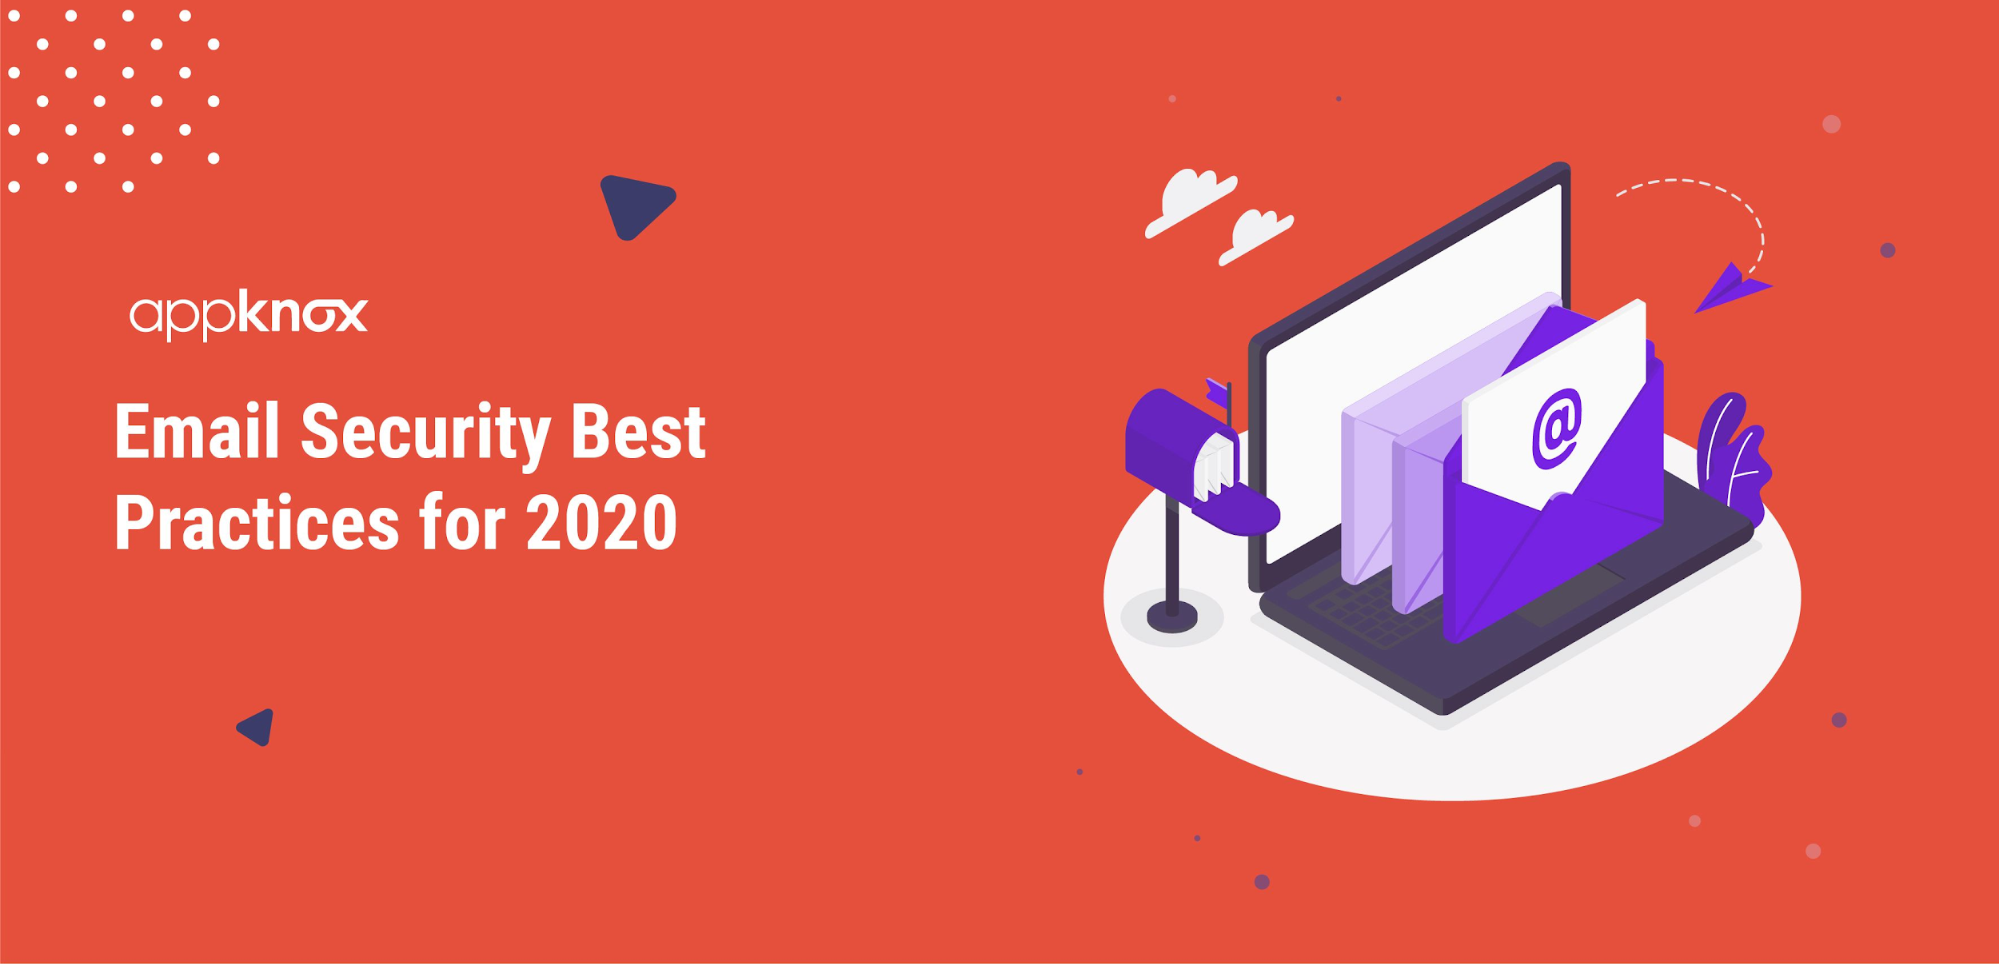 Email security best practices for 2020